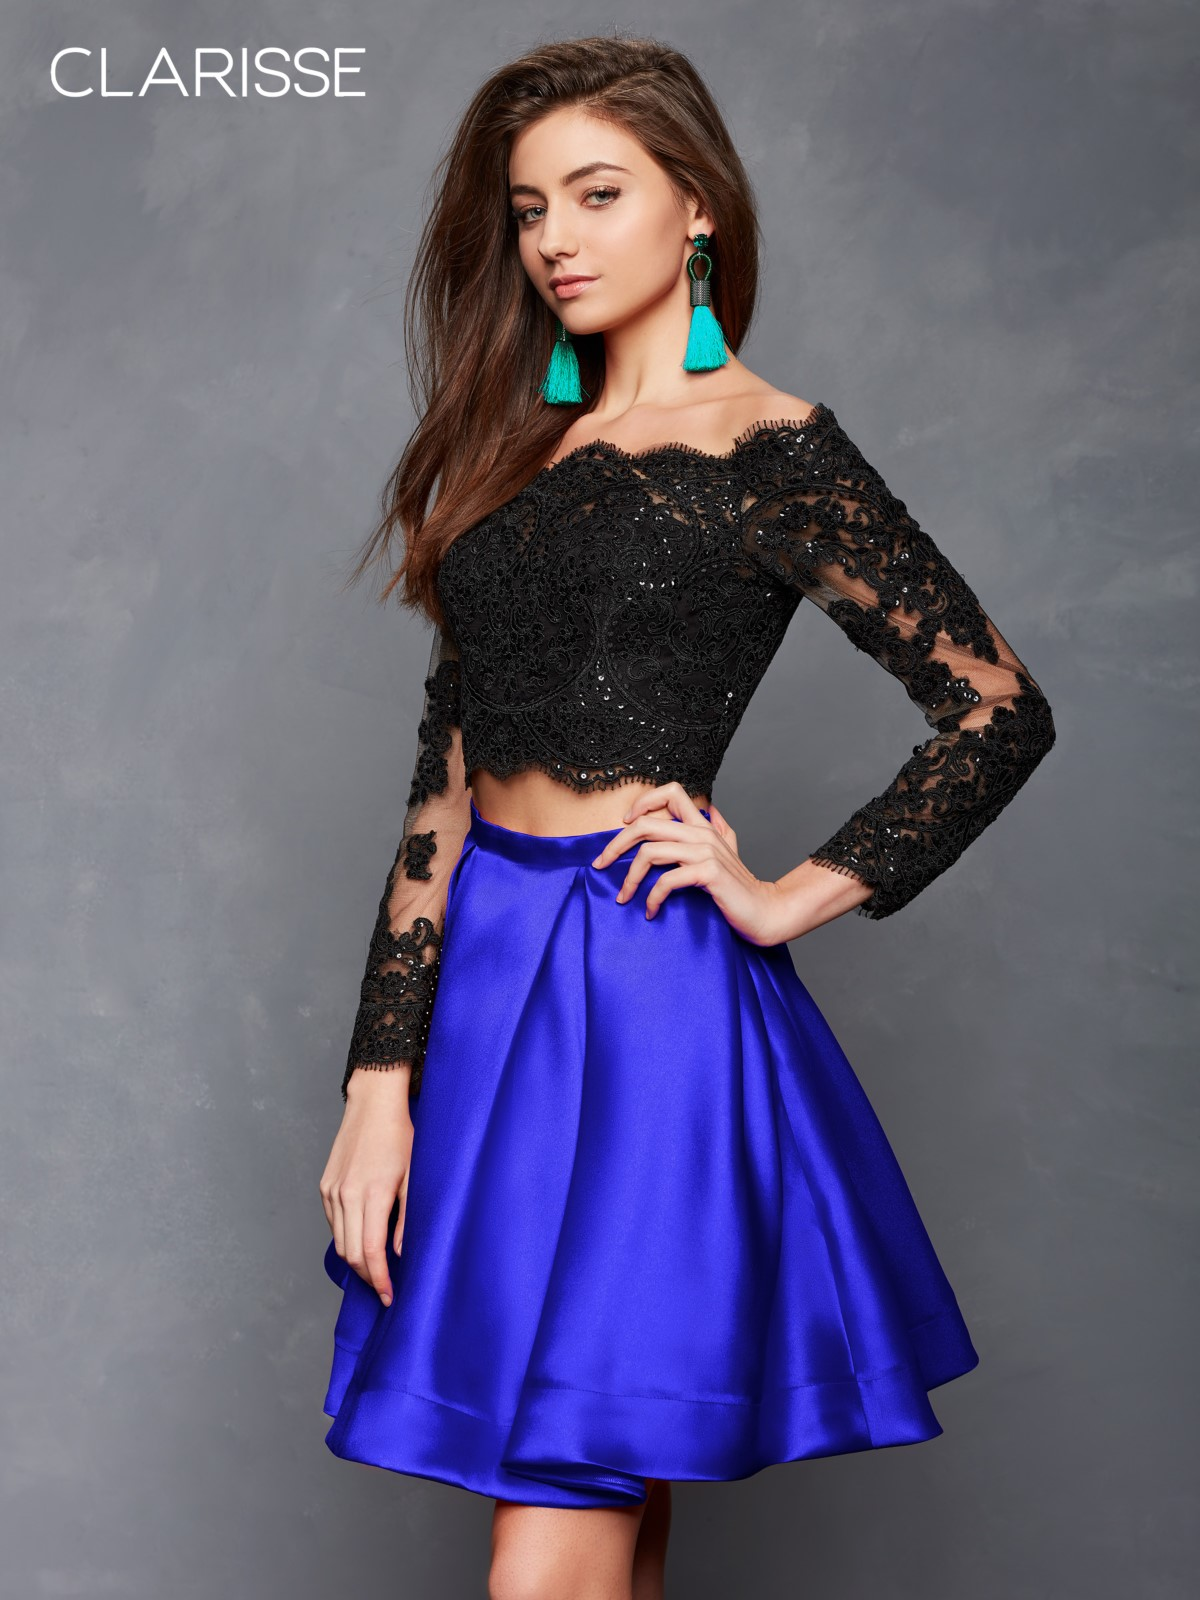 d1e026df8c33f Dramatic Long Sleeved Two Piece Homecoming Dress s3581| Promgirl.net 2018